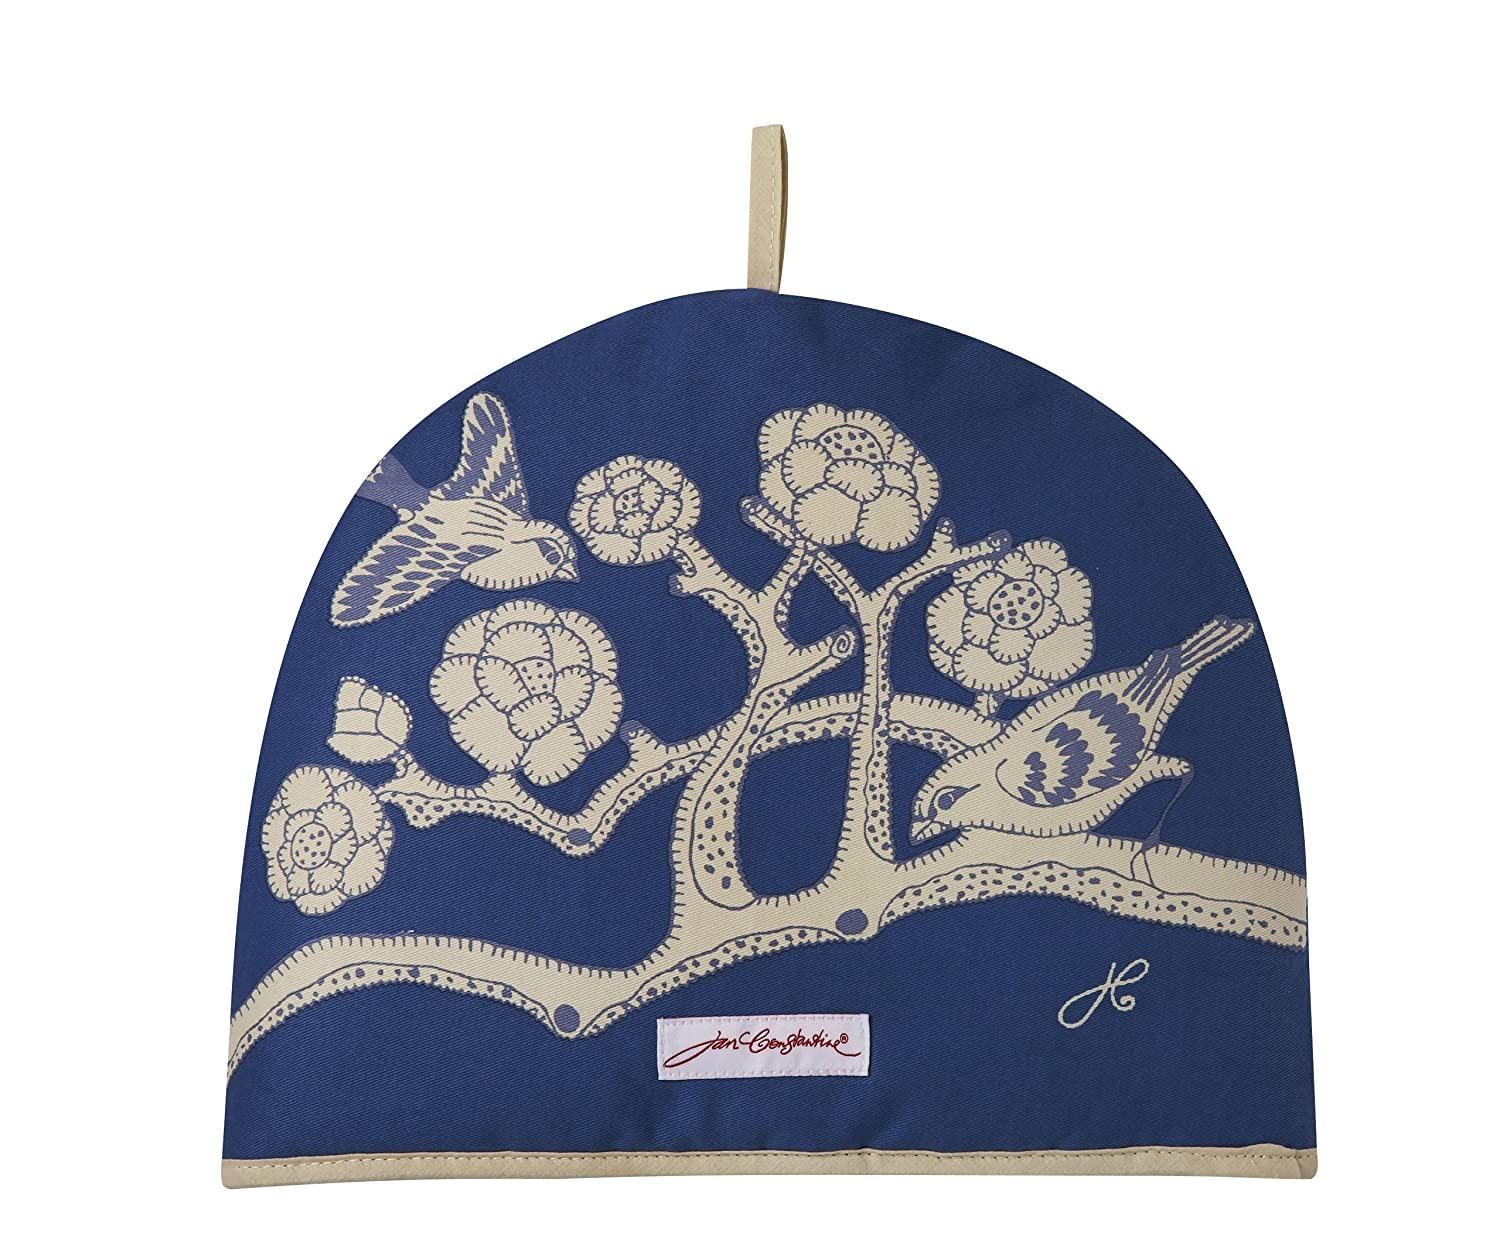 JC China Blue Tea cosy Ulster Weavers 7CNAB04